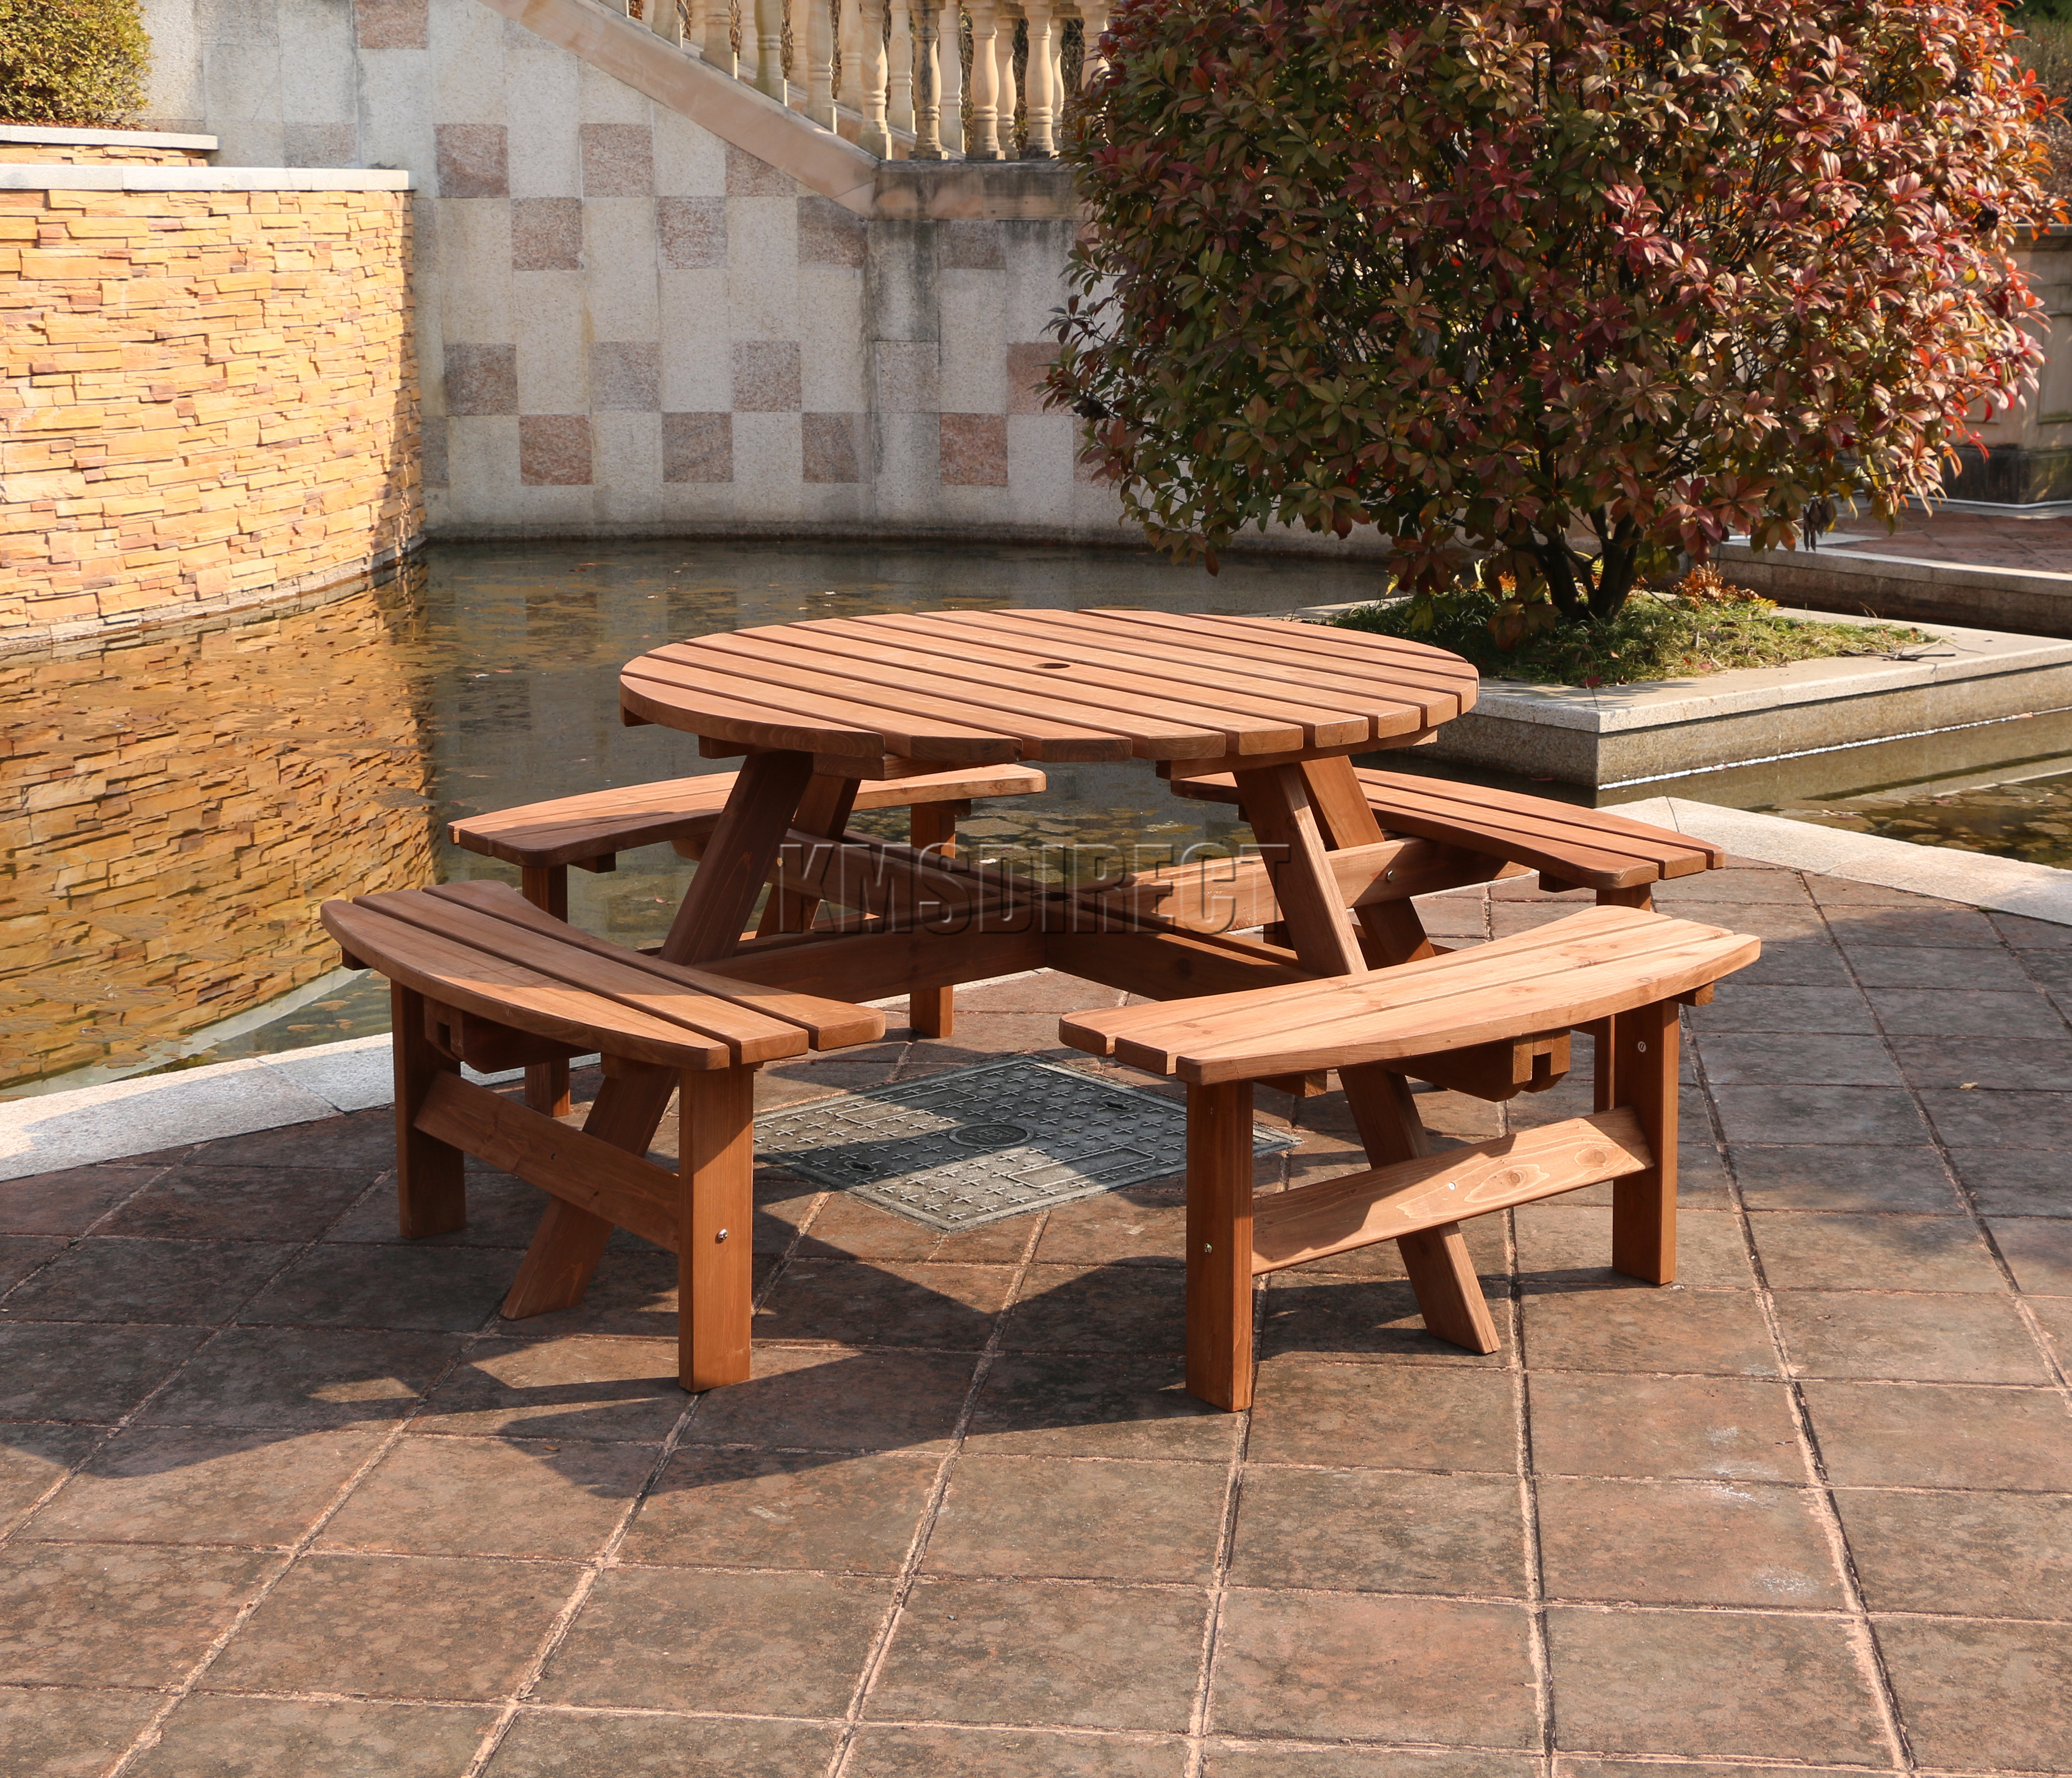 Garden Patio 8 Seater Wooden Pub Bench Round Picnic Table Furniture Brown New Ebay